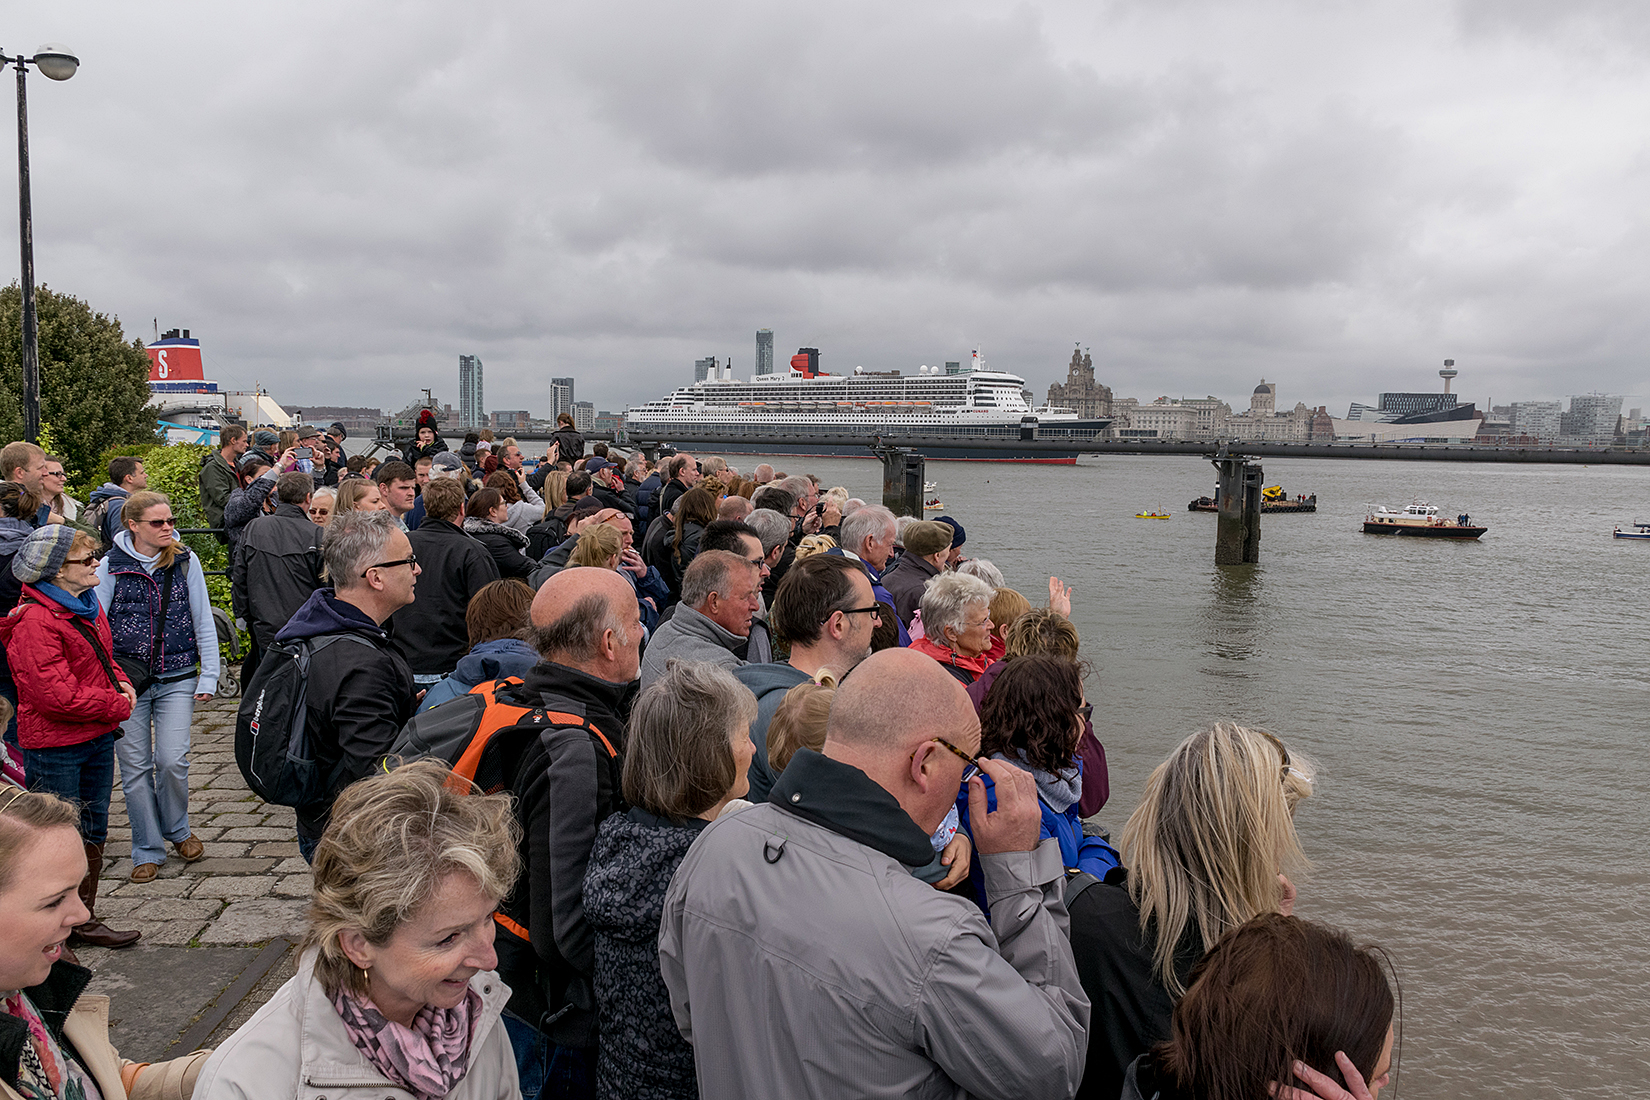 Hundreds of thousands of spectators lined the Mersey to watch the Three Queens make maritime history